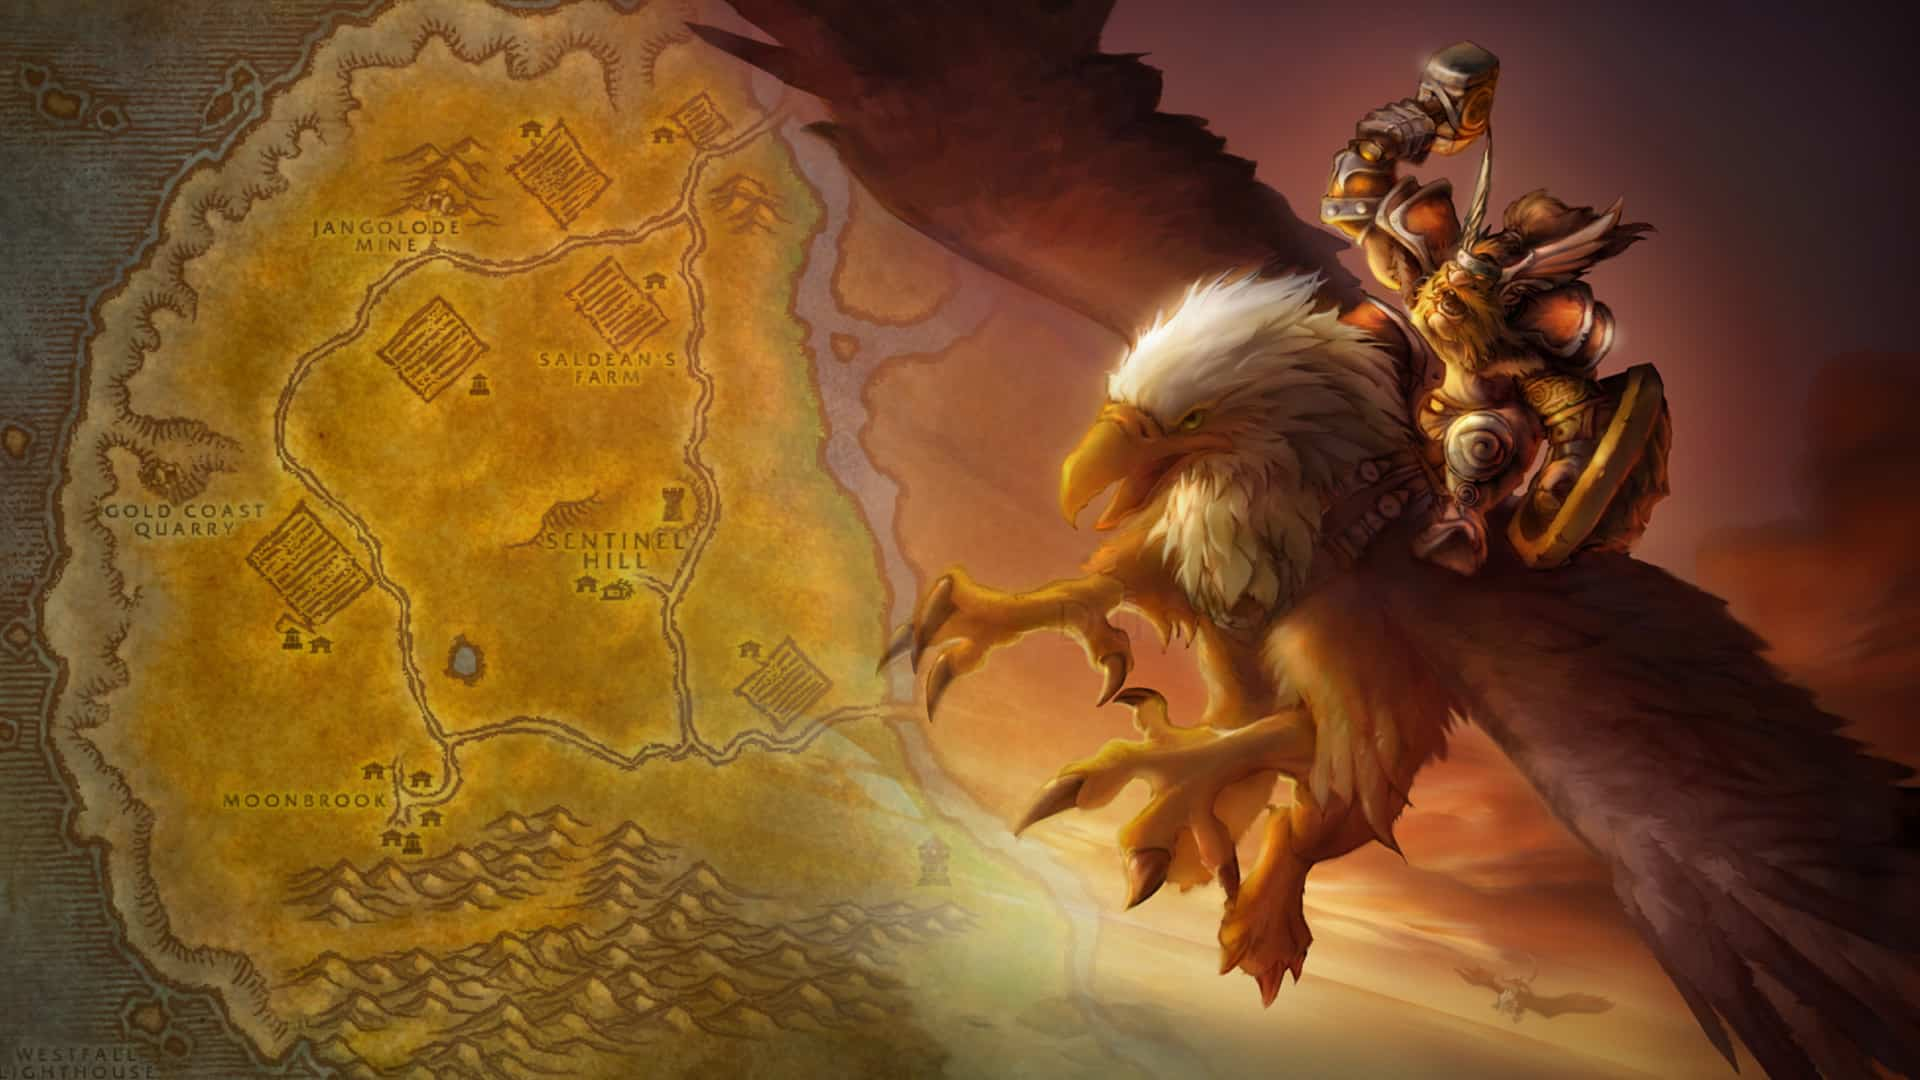 World of Warcraft leveling rush makes us ignore Alliance evil in the story Westfall